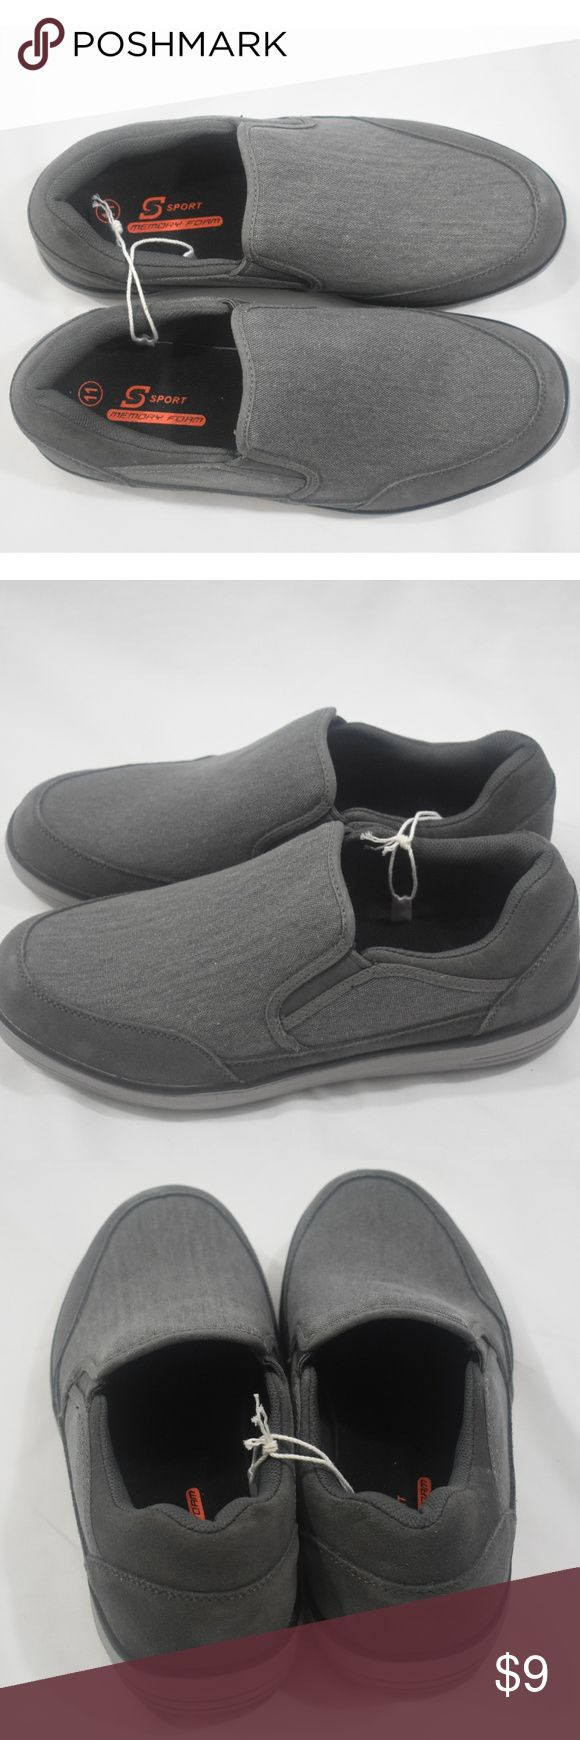 Skechers Men's Athletic Slip-On Sneakers - NWT Lighten up your sporty casual looks easily with these sporty shoes. Soft woven canvas fabric and sport suede upper in a slip on sporty casual comfort sneaker moc with stitching and overlay accents.  •Activity Worn for: Walking •Care and Cleaning: Avoid extreme heat Skechers Shoes Loafers & Slip-Ons